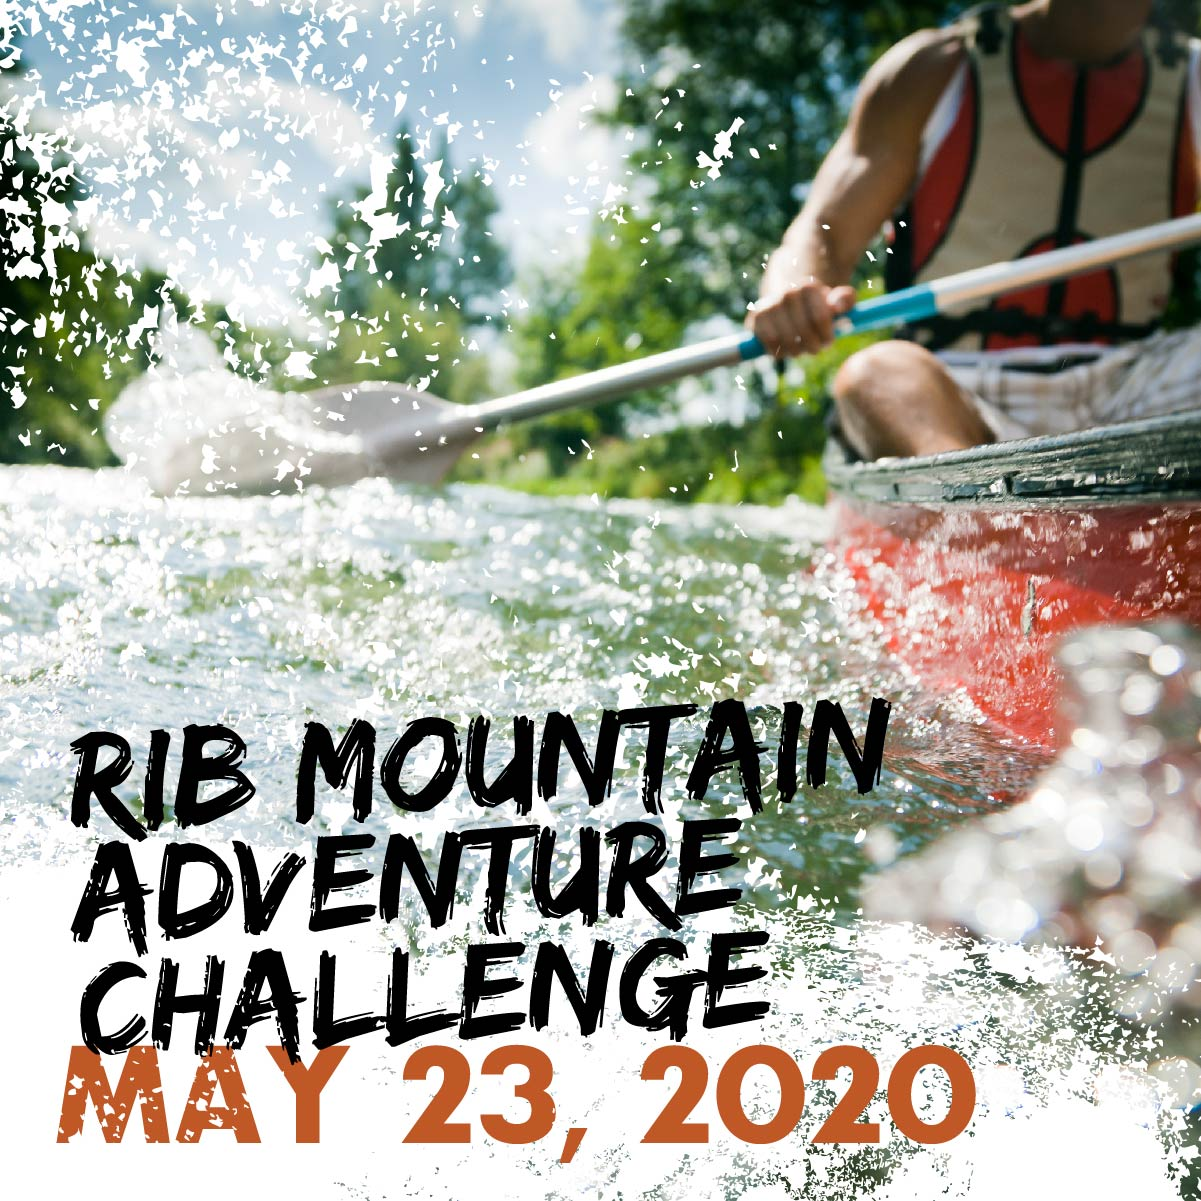 Rib Mountain Adventure Challenge: May 25, 2019